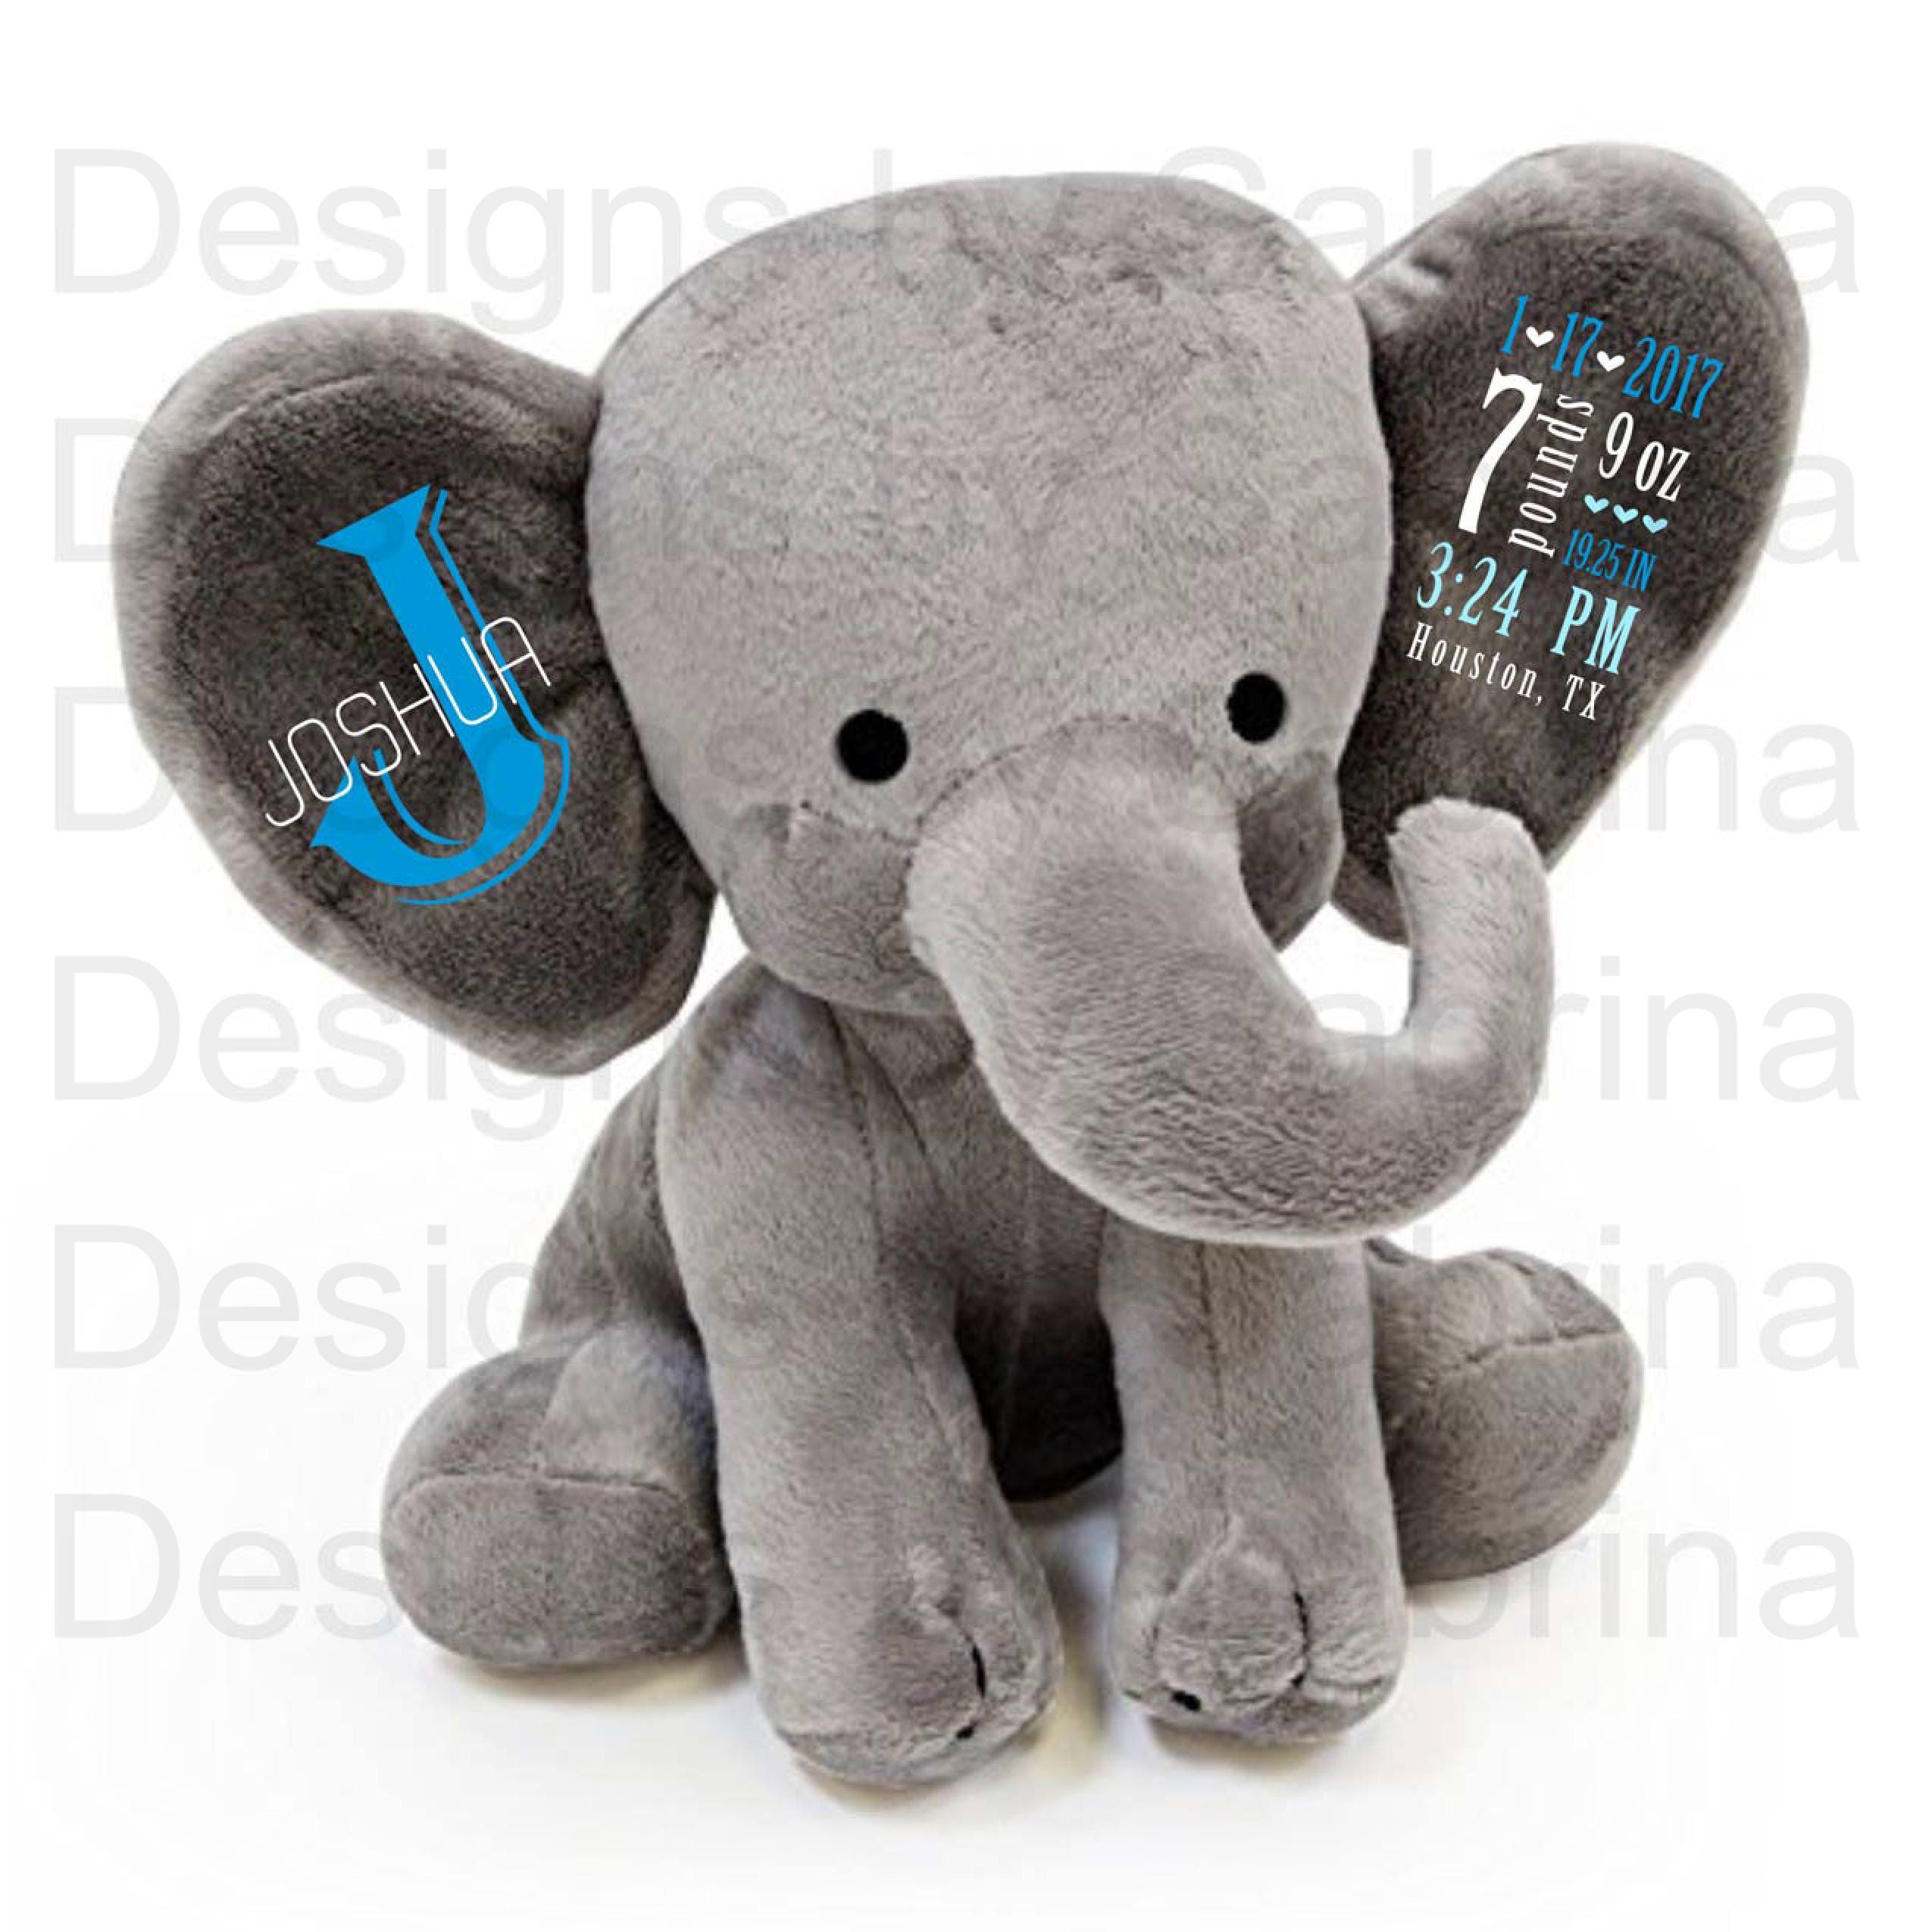 Personalized Elephant Personalized Baby Gift Baby Shower Gift Baby Gift Plush Elephant Stuffed Elephant Birth Announcement Baby Keepsake